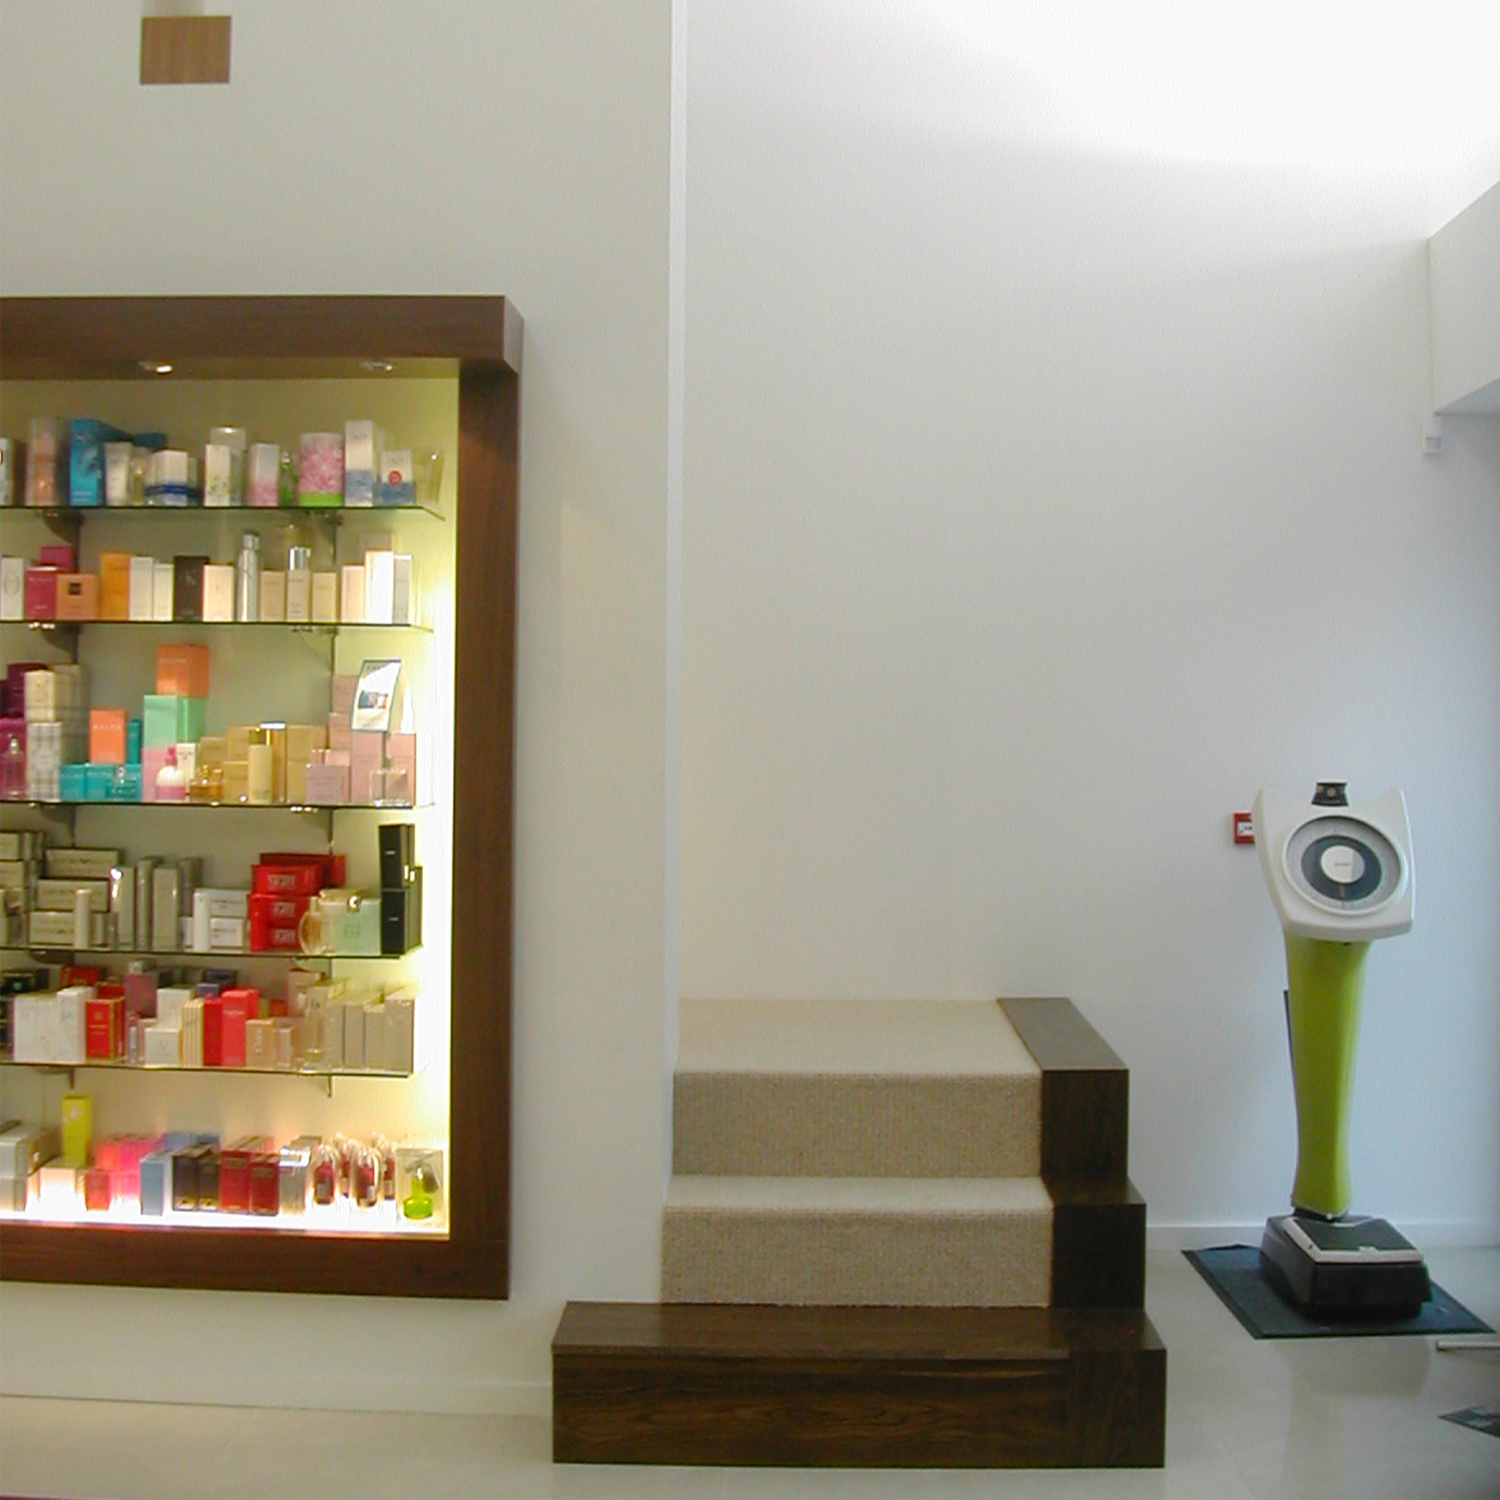 LAVELLE'S PHARMACY